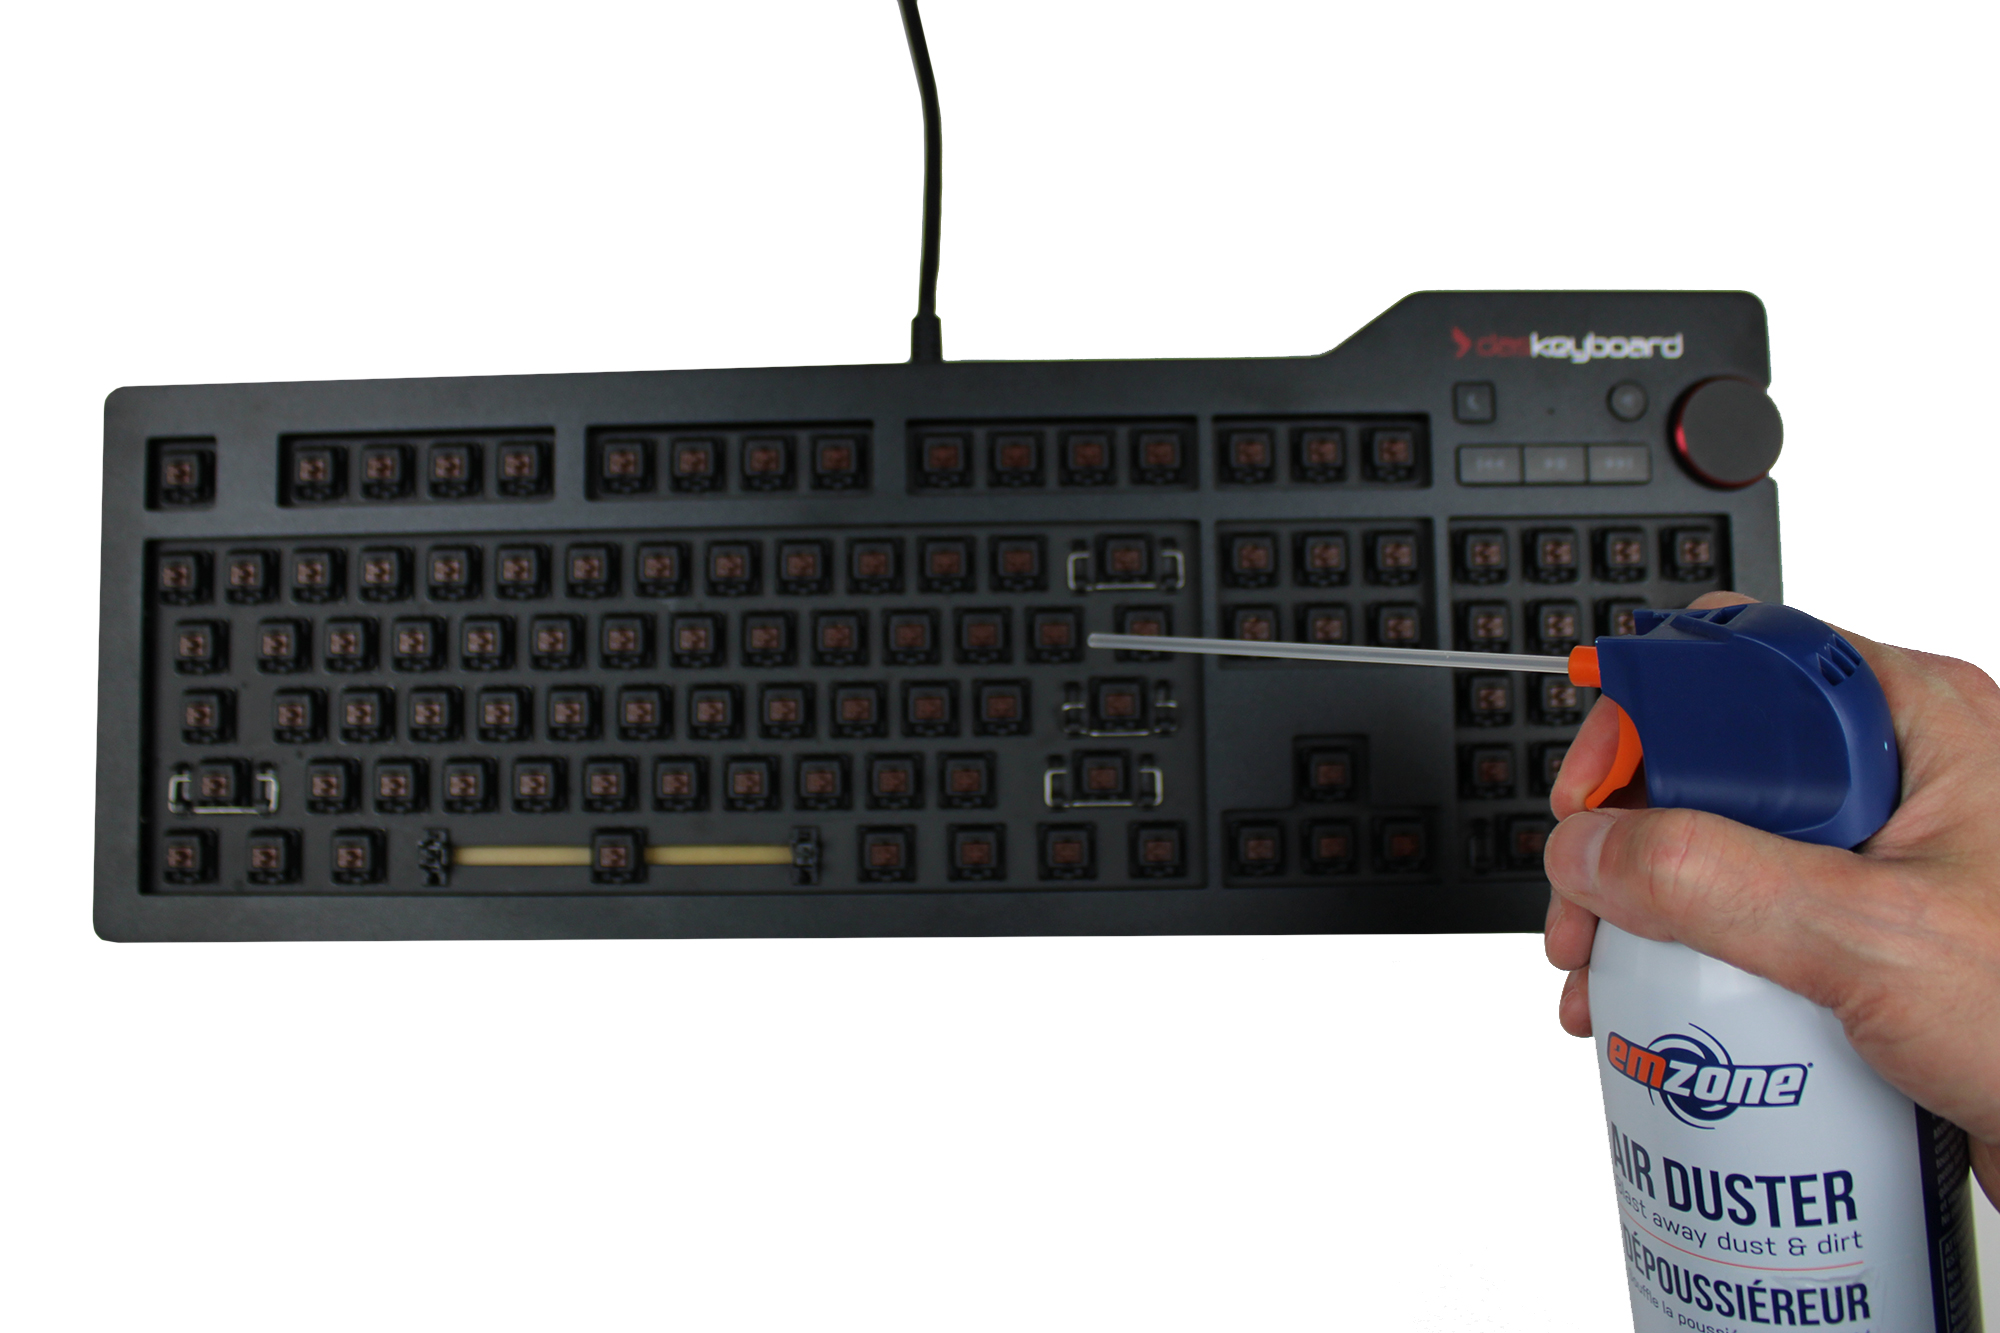 How to clean a keyboard with no keycaps